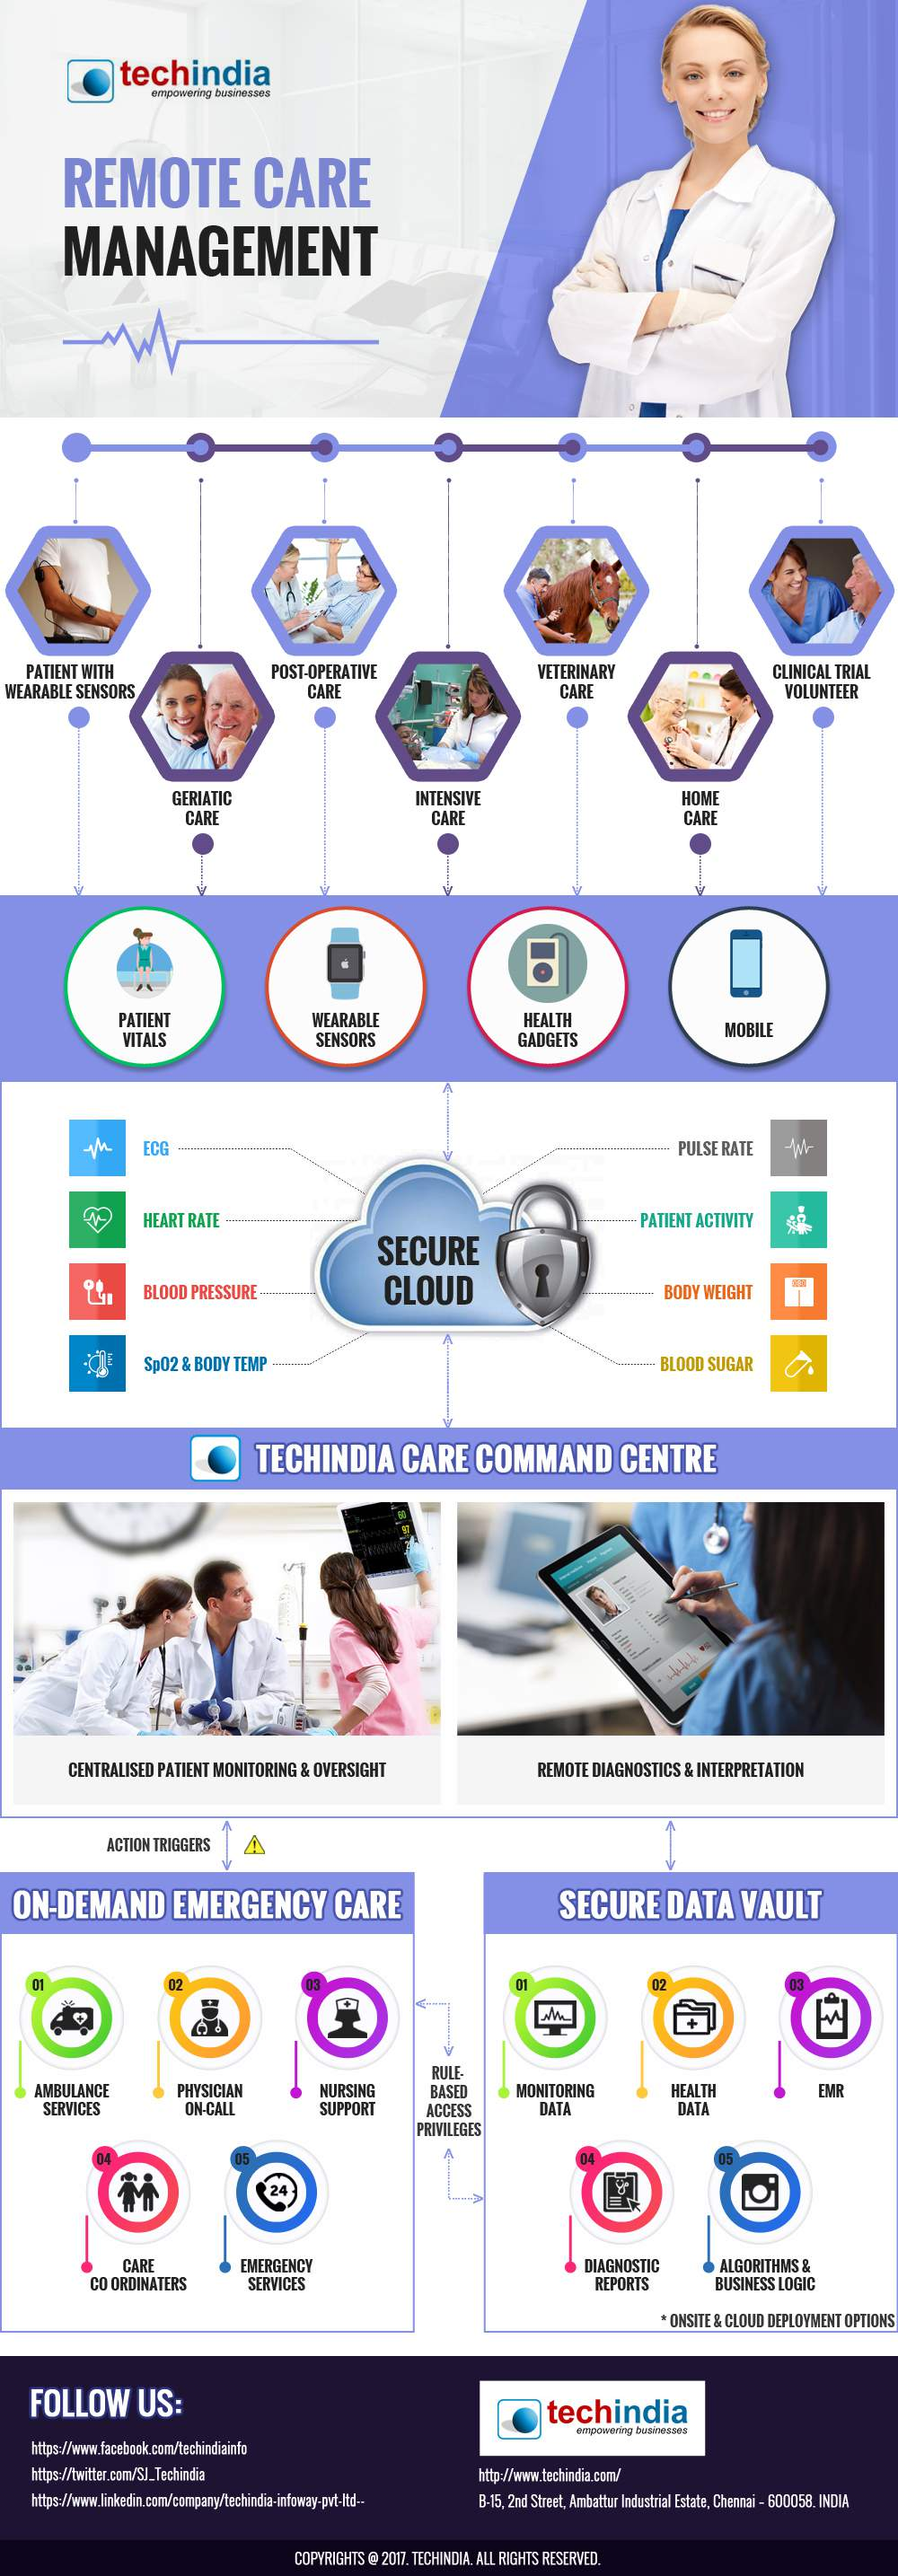 Remote Care Management